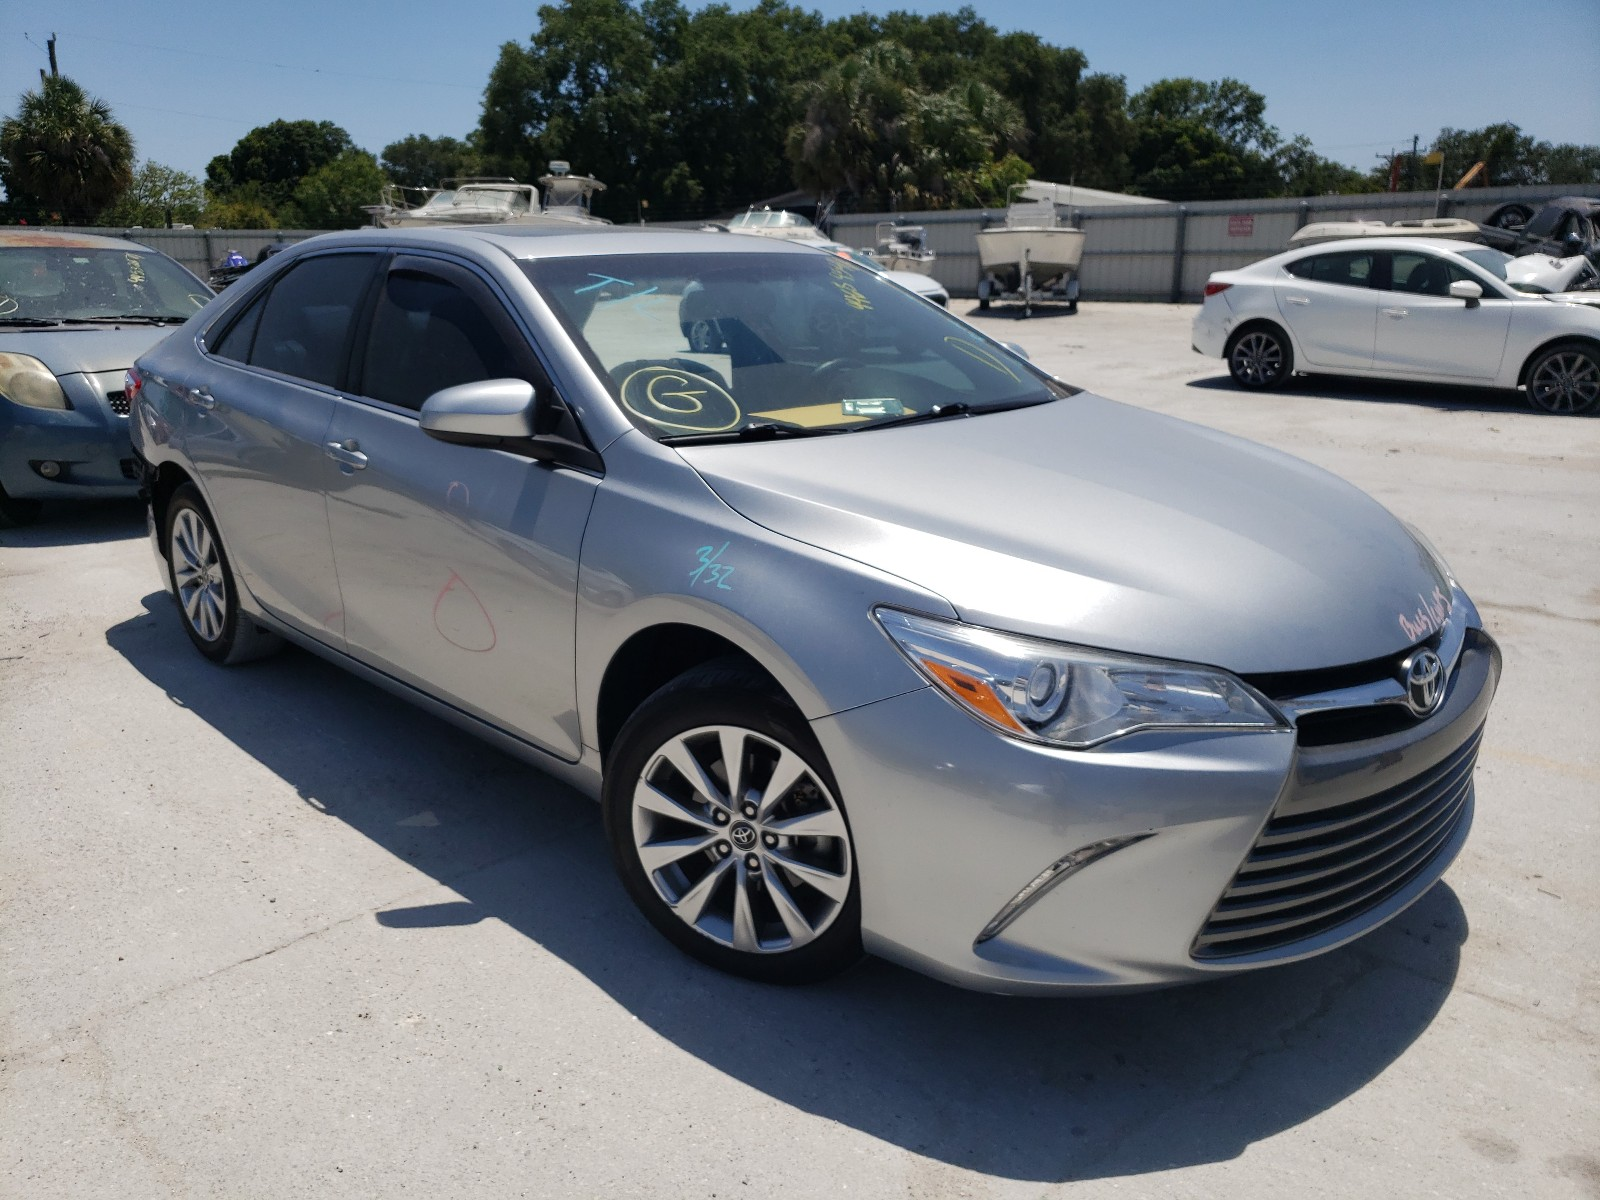 2017 TOYOTA CAMRY LE - 4T1BF1FK0HU706908